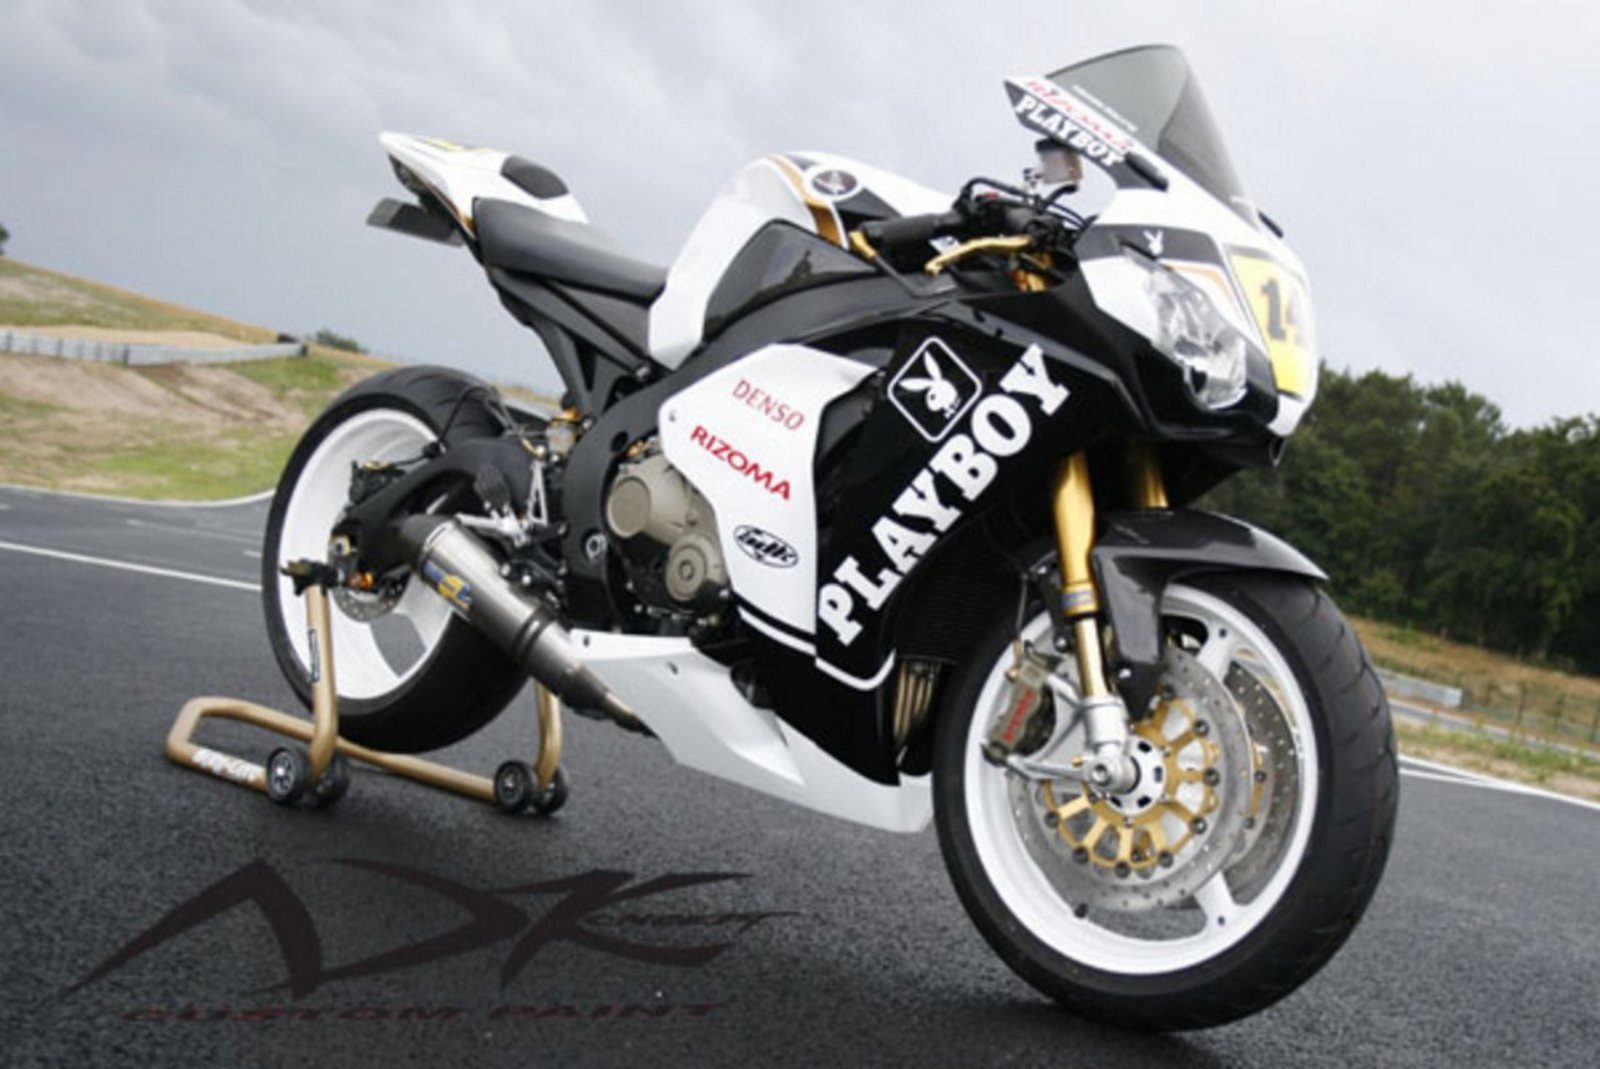 Honda Cbr Latest News Reviews Specifications Prices Photos And